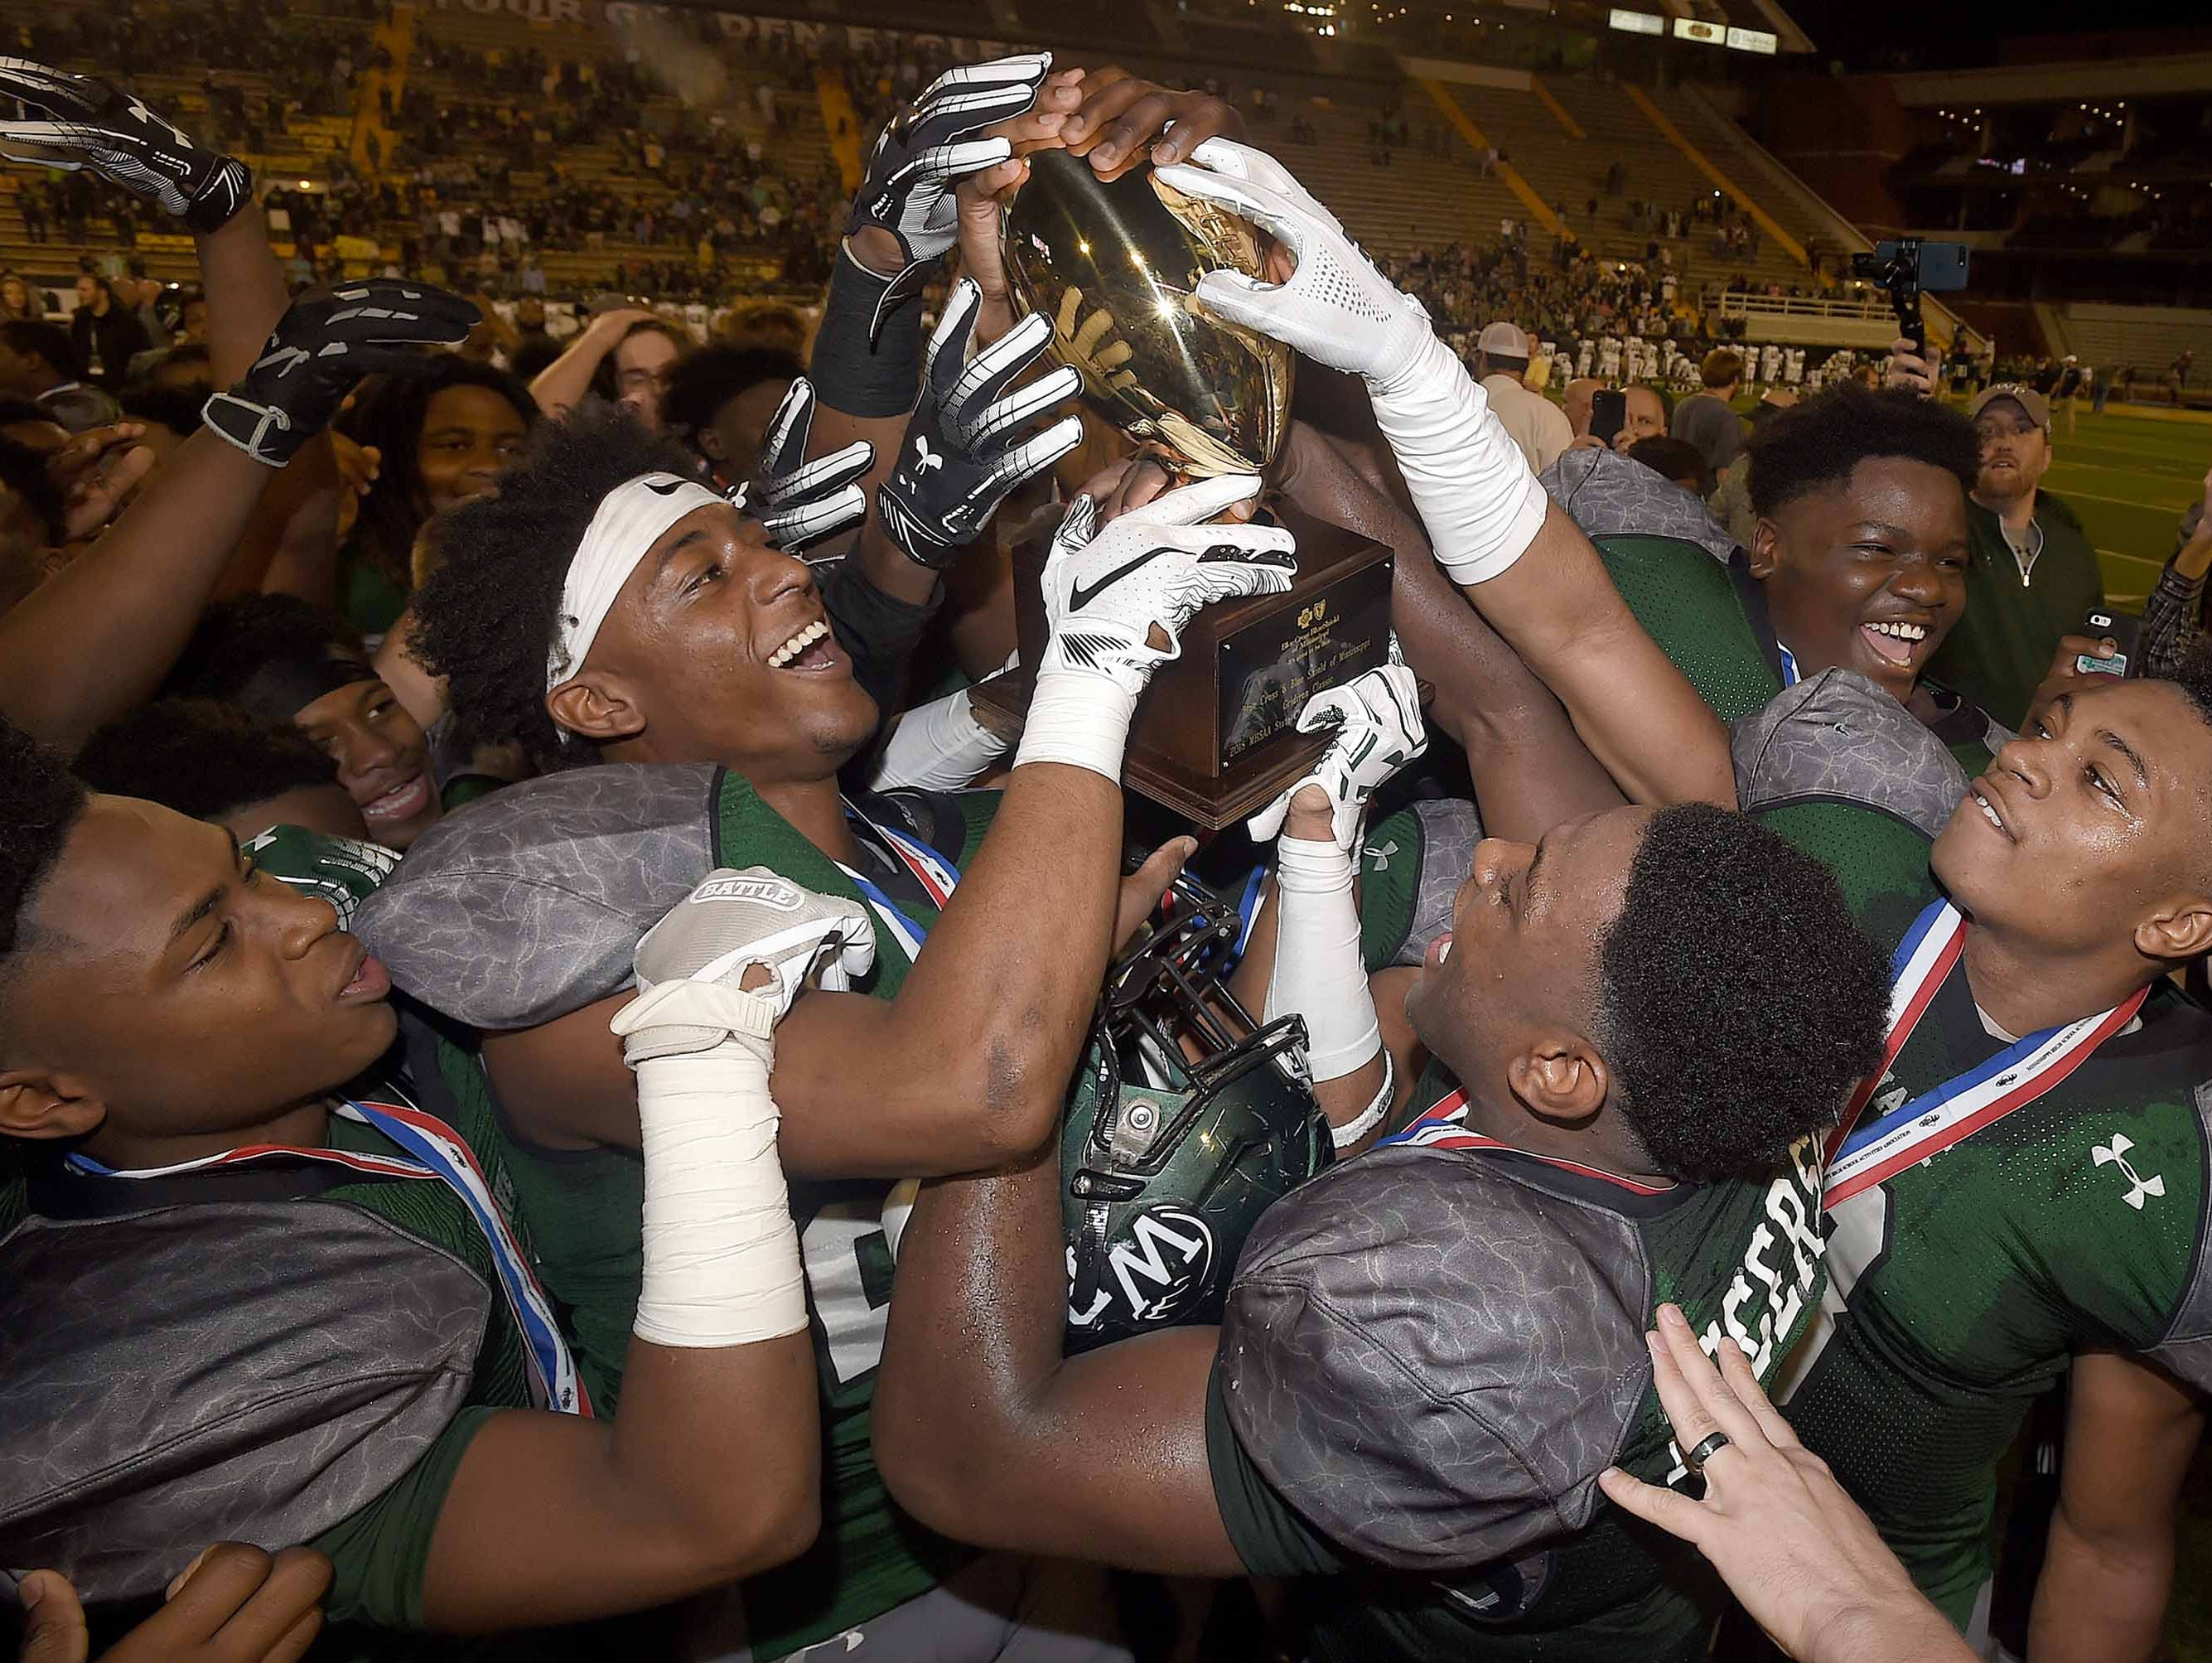 The West Point Green Wave celebrate with the Class 5A trophy after beating West Jones on Saturday, December 1, 2018, in the MHSAA BlueCross BlueShield Gridiron Classic High School Football Championships in M.M. Roberts Stadium on the University of Southern Mississippi campus in Hattiesburg, Miss.